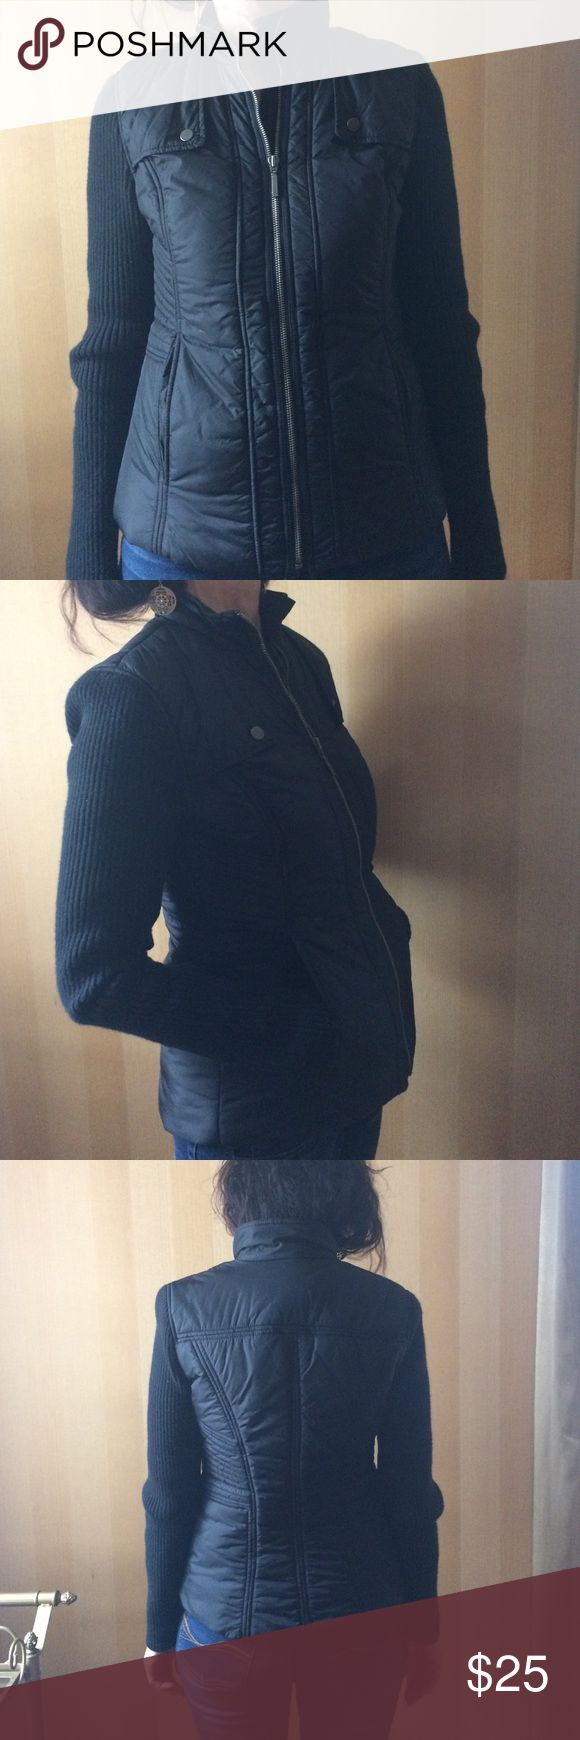 Mid-weight Tommy Hilfiger black jacket NWOT Tommy Hilfiger mid-weight jacket, sweater sleeves. Never worn. Two outside pockets, zip up. Perfect condition. Tommy Hilfiger Jackets & Coats Puffers